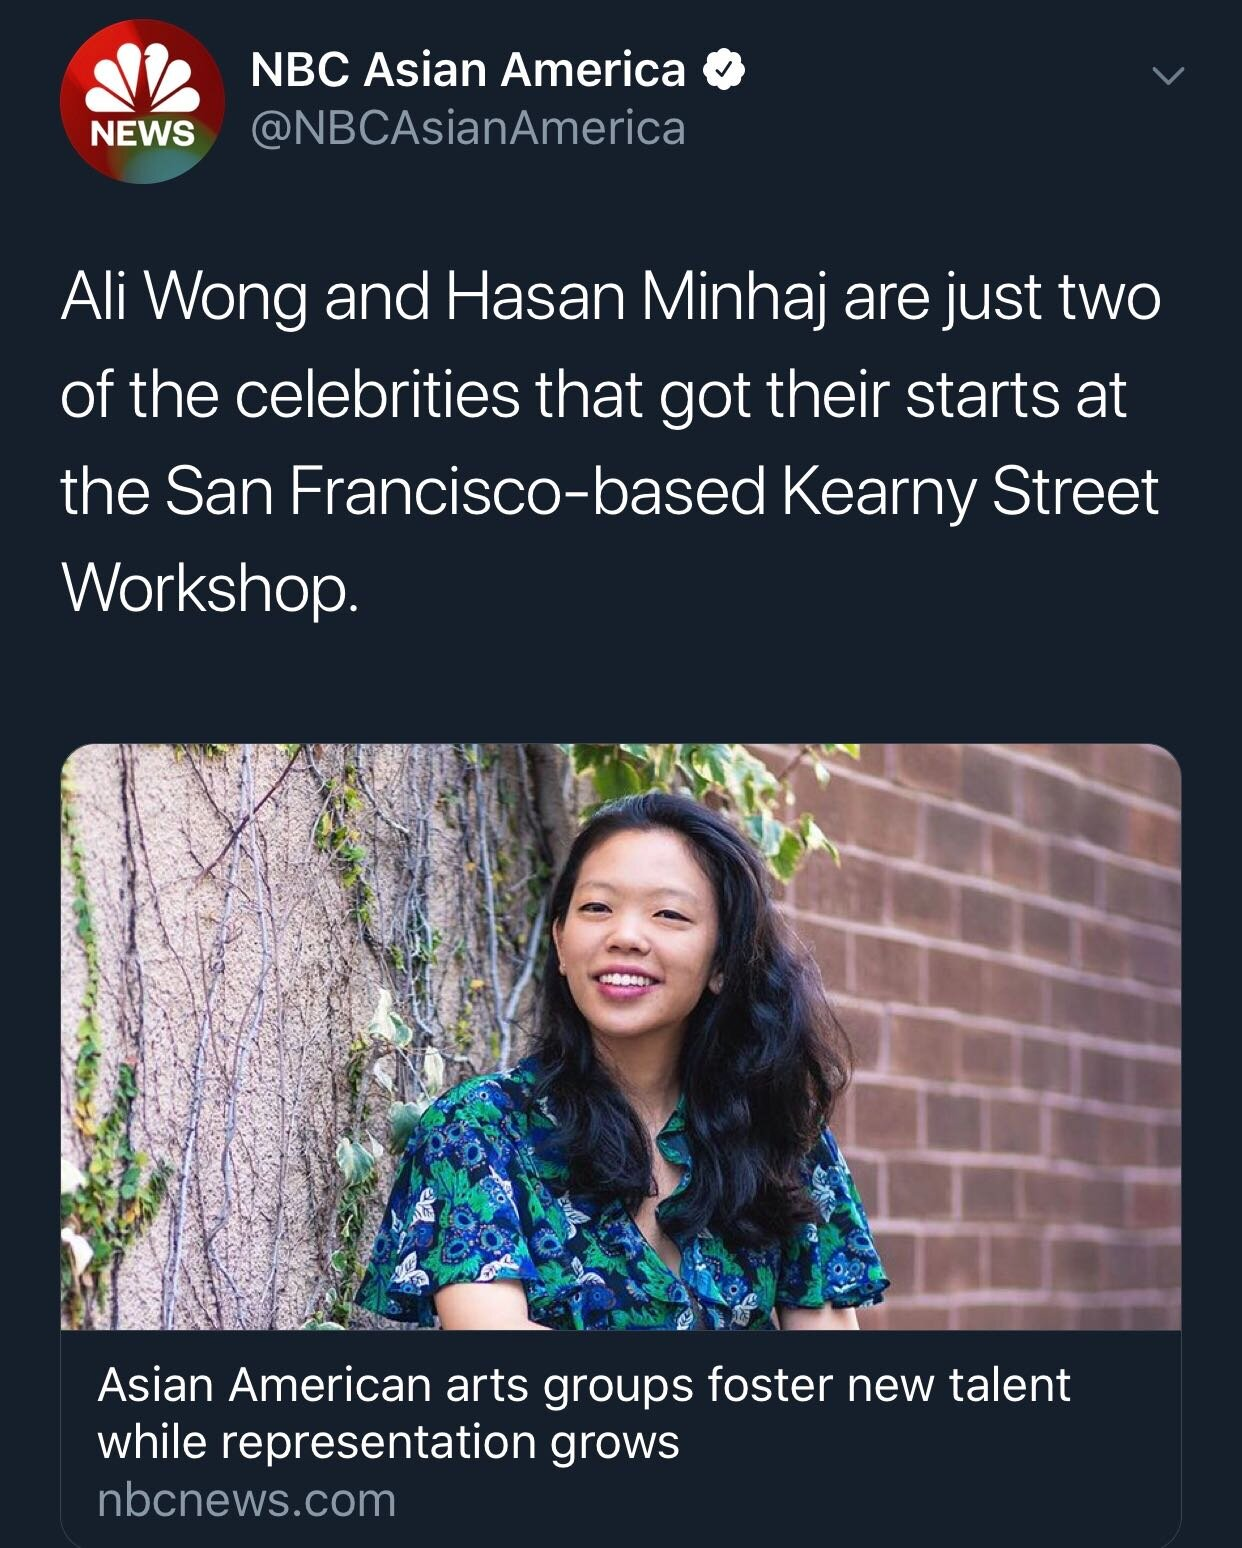 From Hasan Minhaj to Ali Wong, how Asian American arts groups are fostering stars